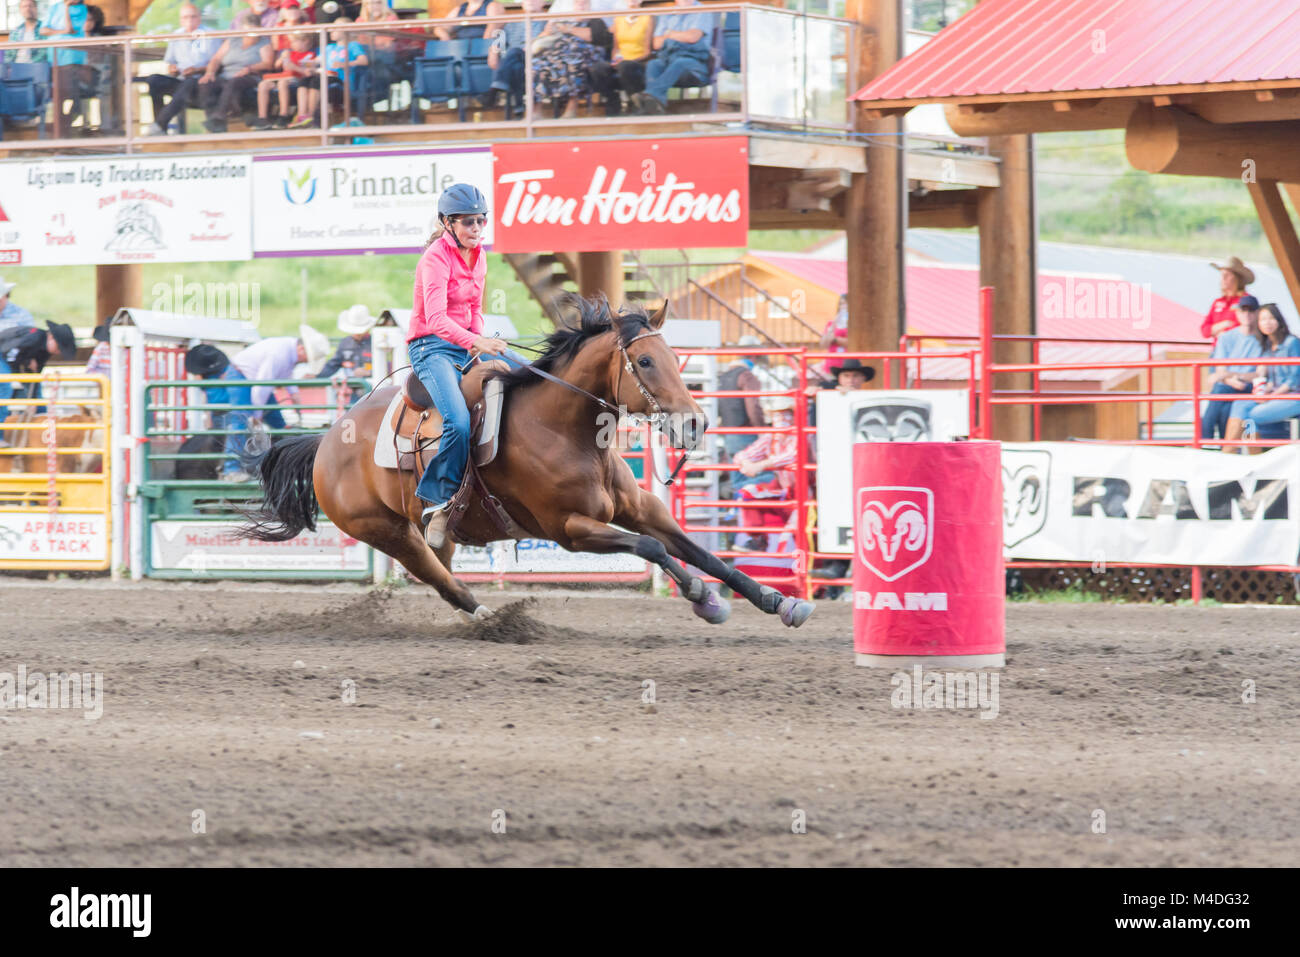 Horse and rider approach next barrel during a barrel racing competition at the 90th Williams Lake Stampede, one - Stock Image